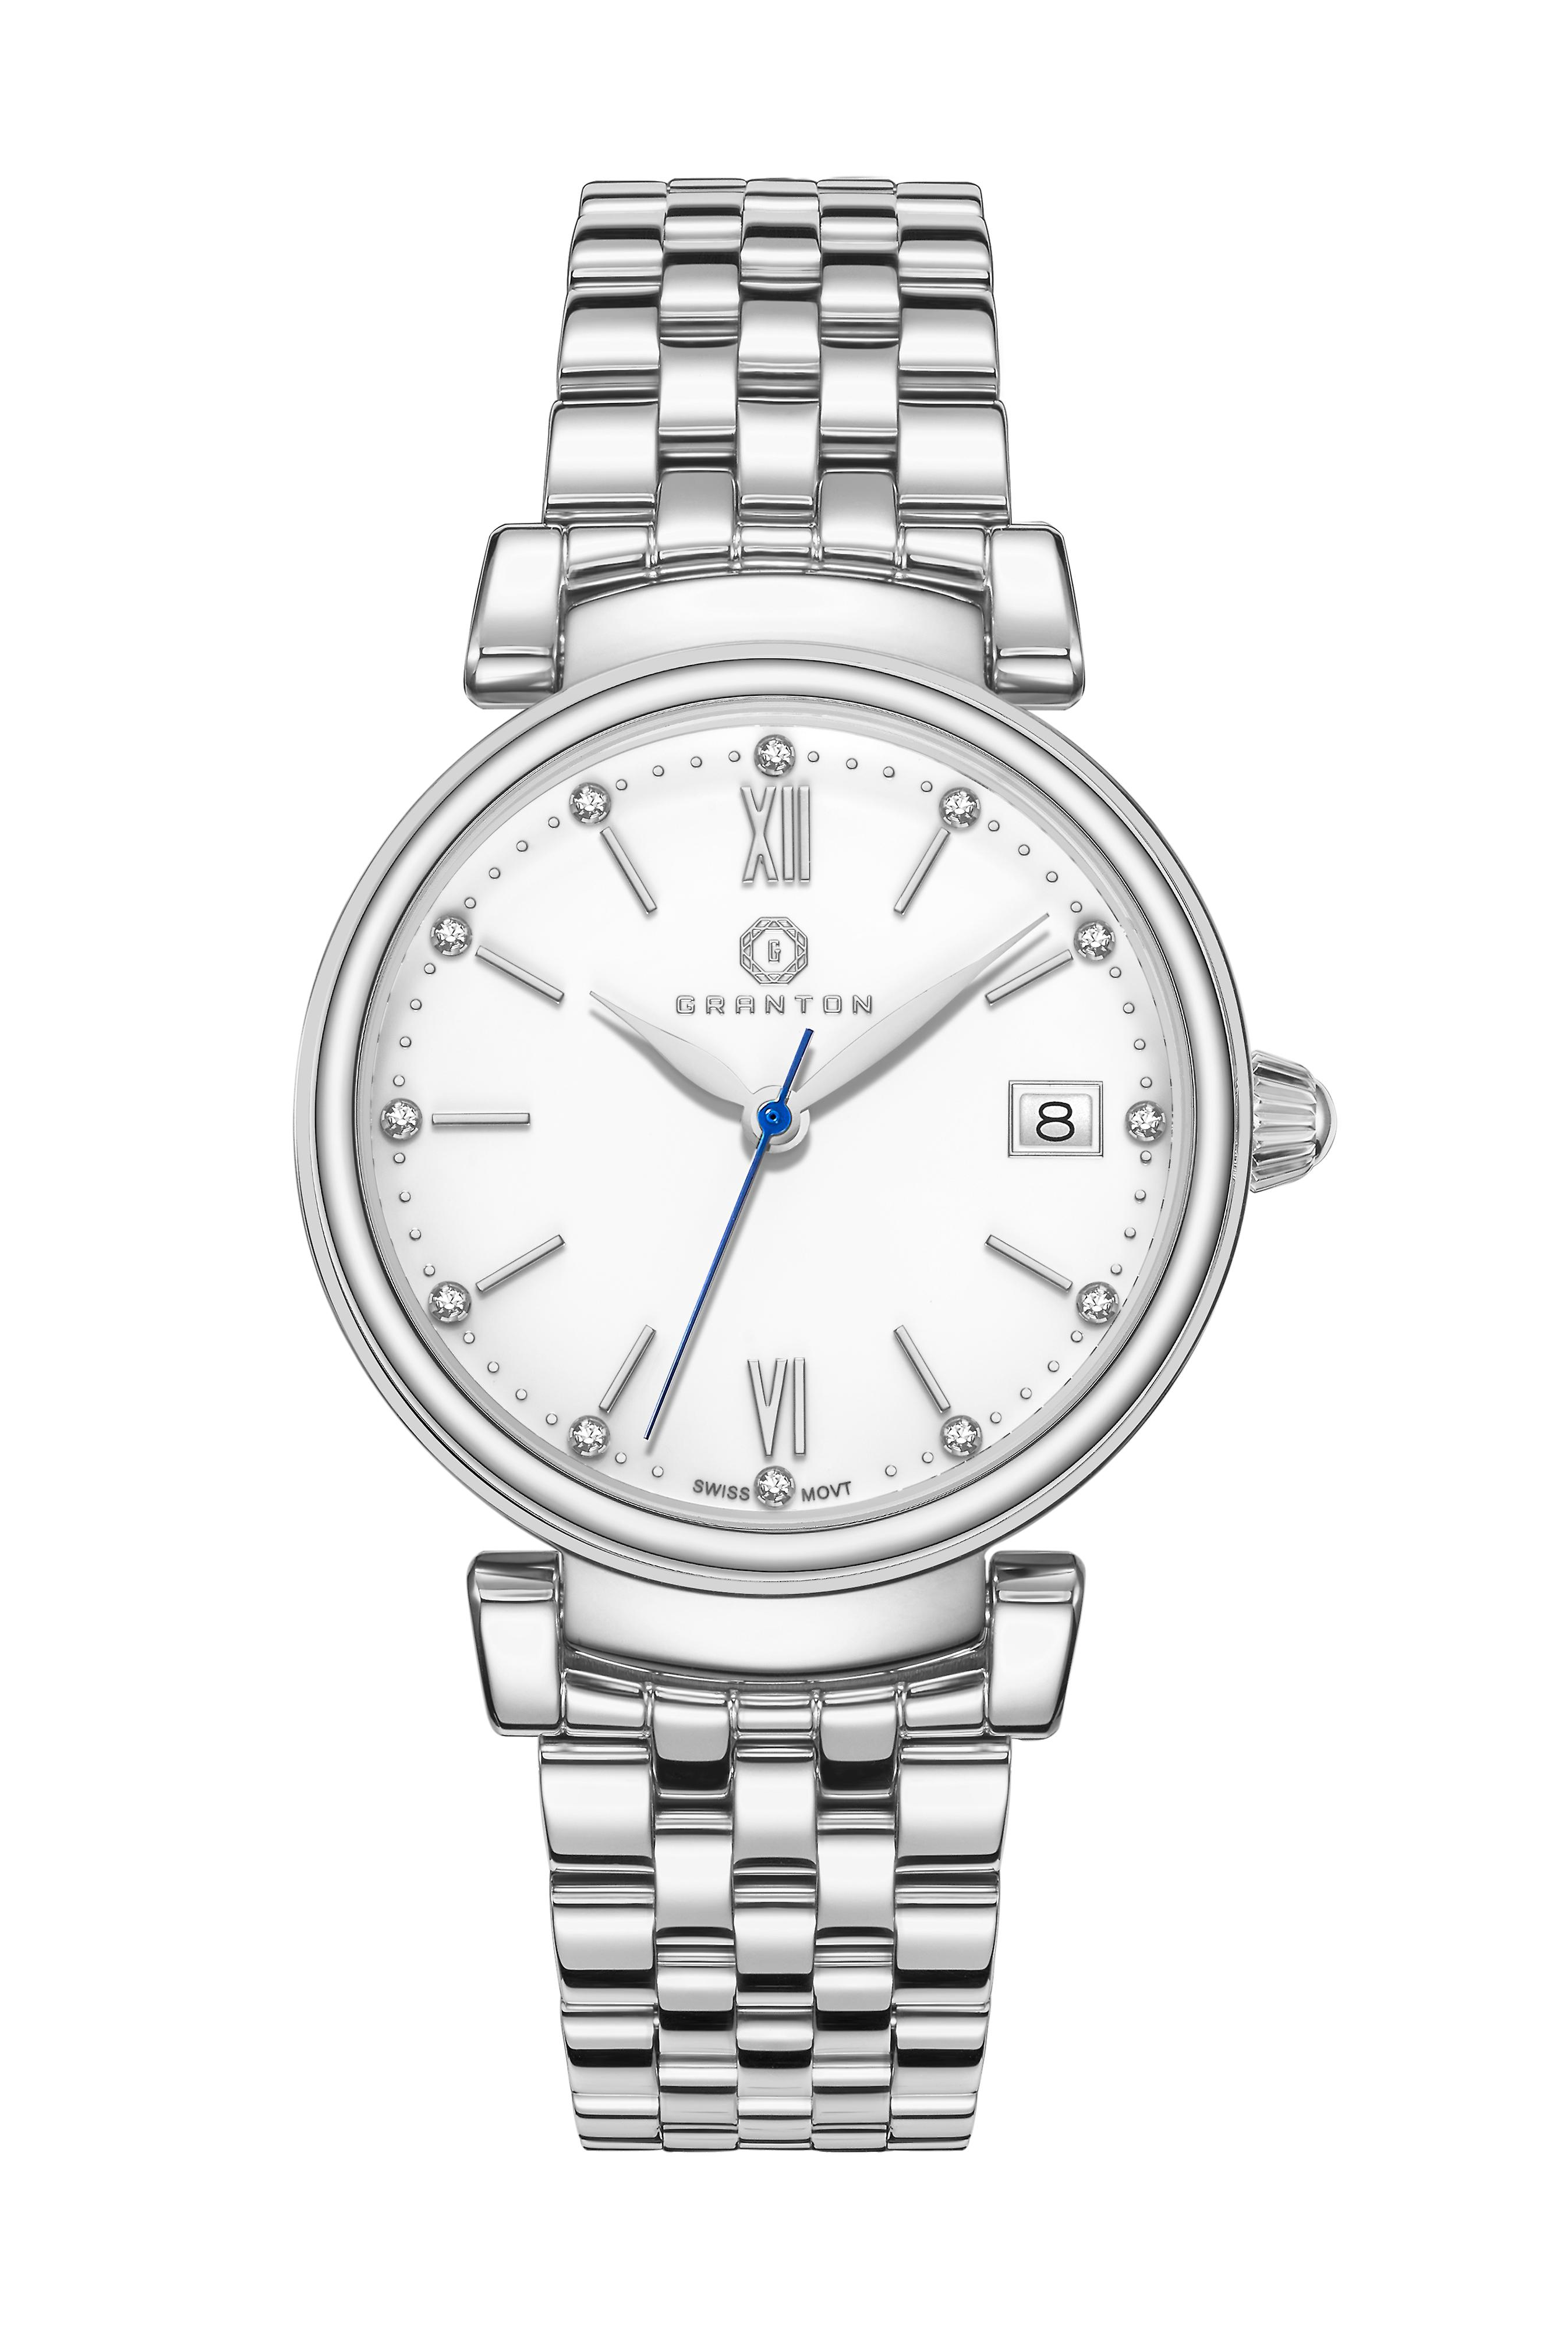 Granton femmes&s argent Tone Watch - Diamond Accented Enamel Dial - Swiss Movement Stainless Steel Ladies Taille Imperial Collection